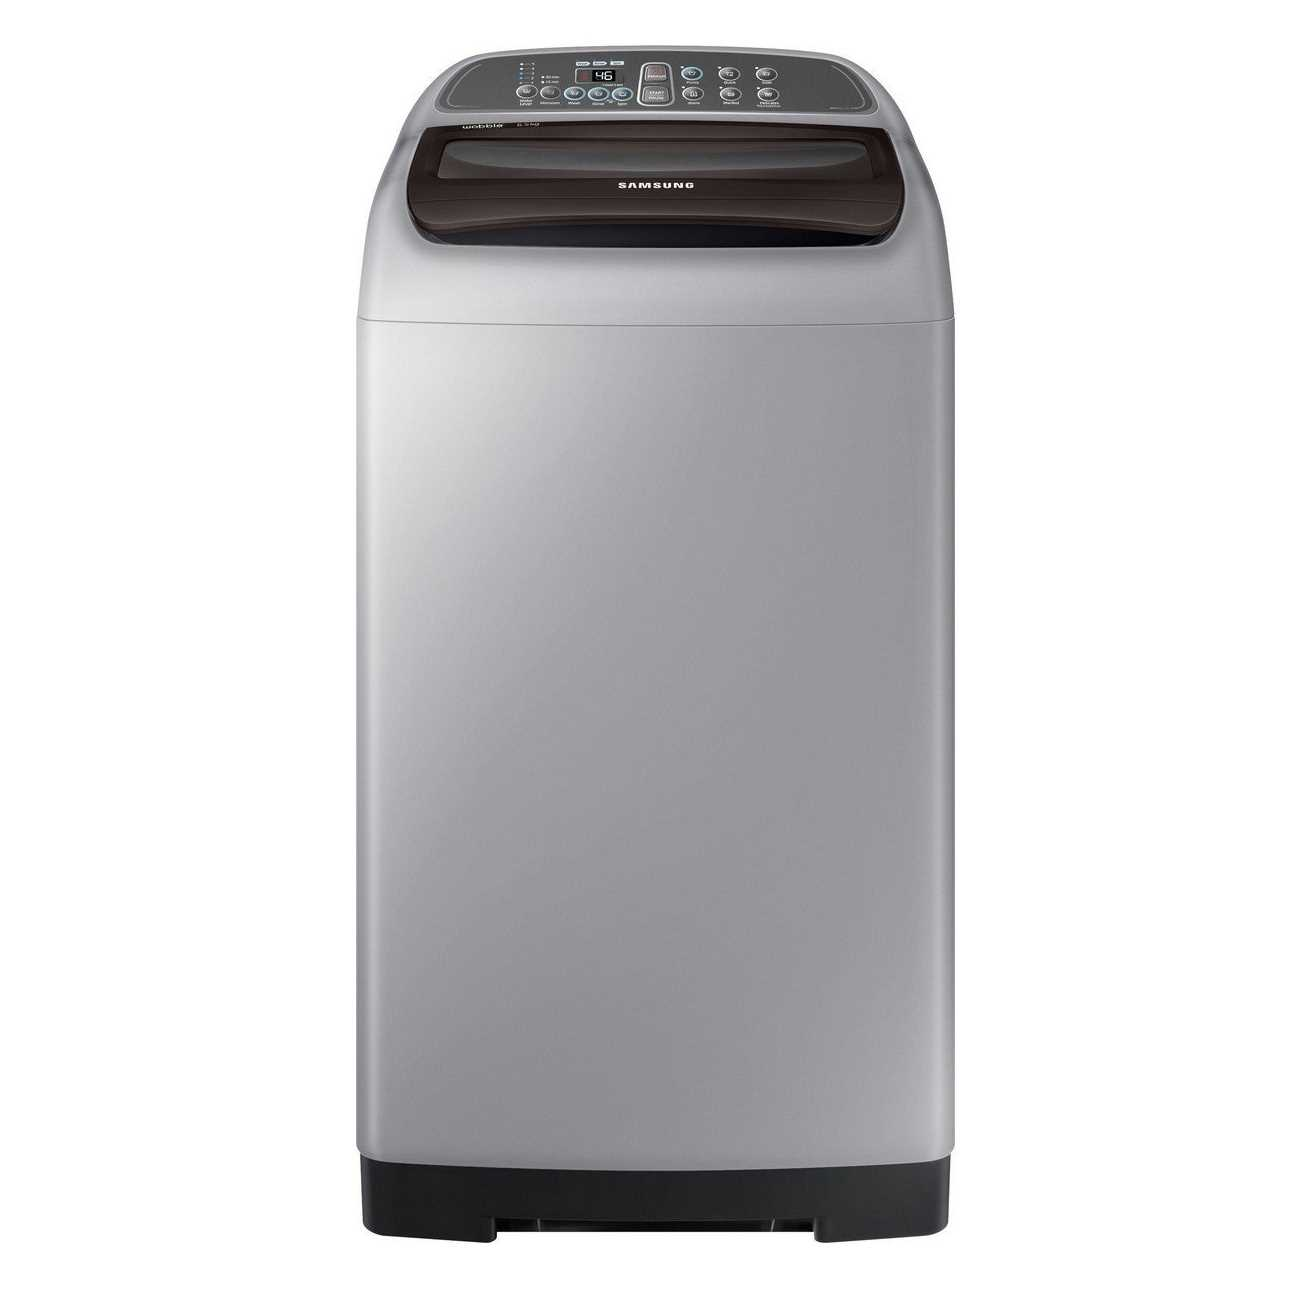 Samsung WA65M4200HD 6.5 Kg Fully Automatic Top Loading Washing Machine